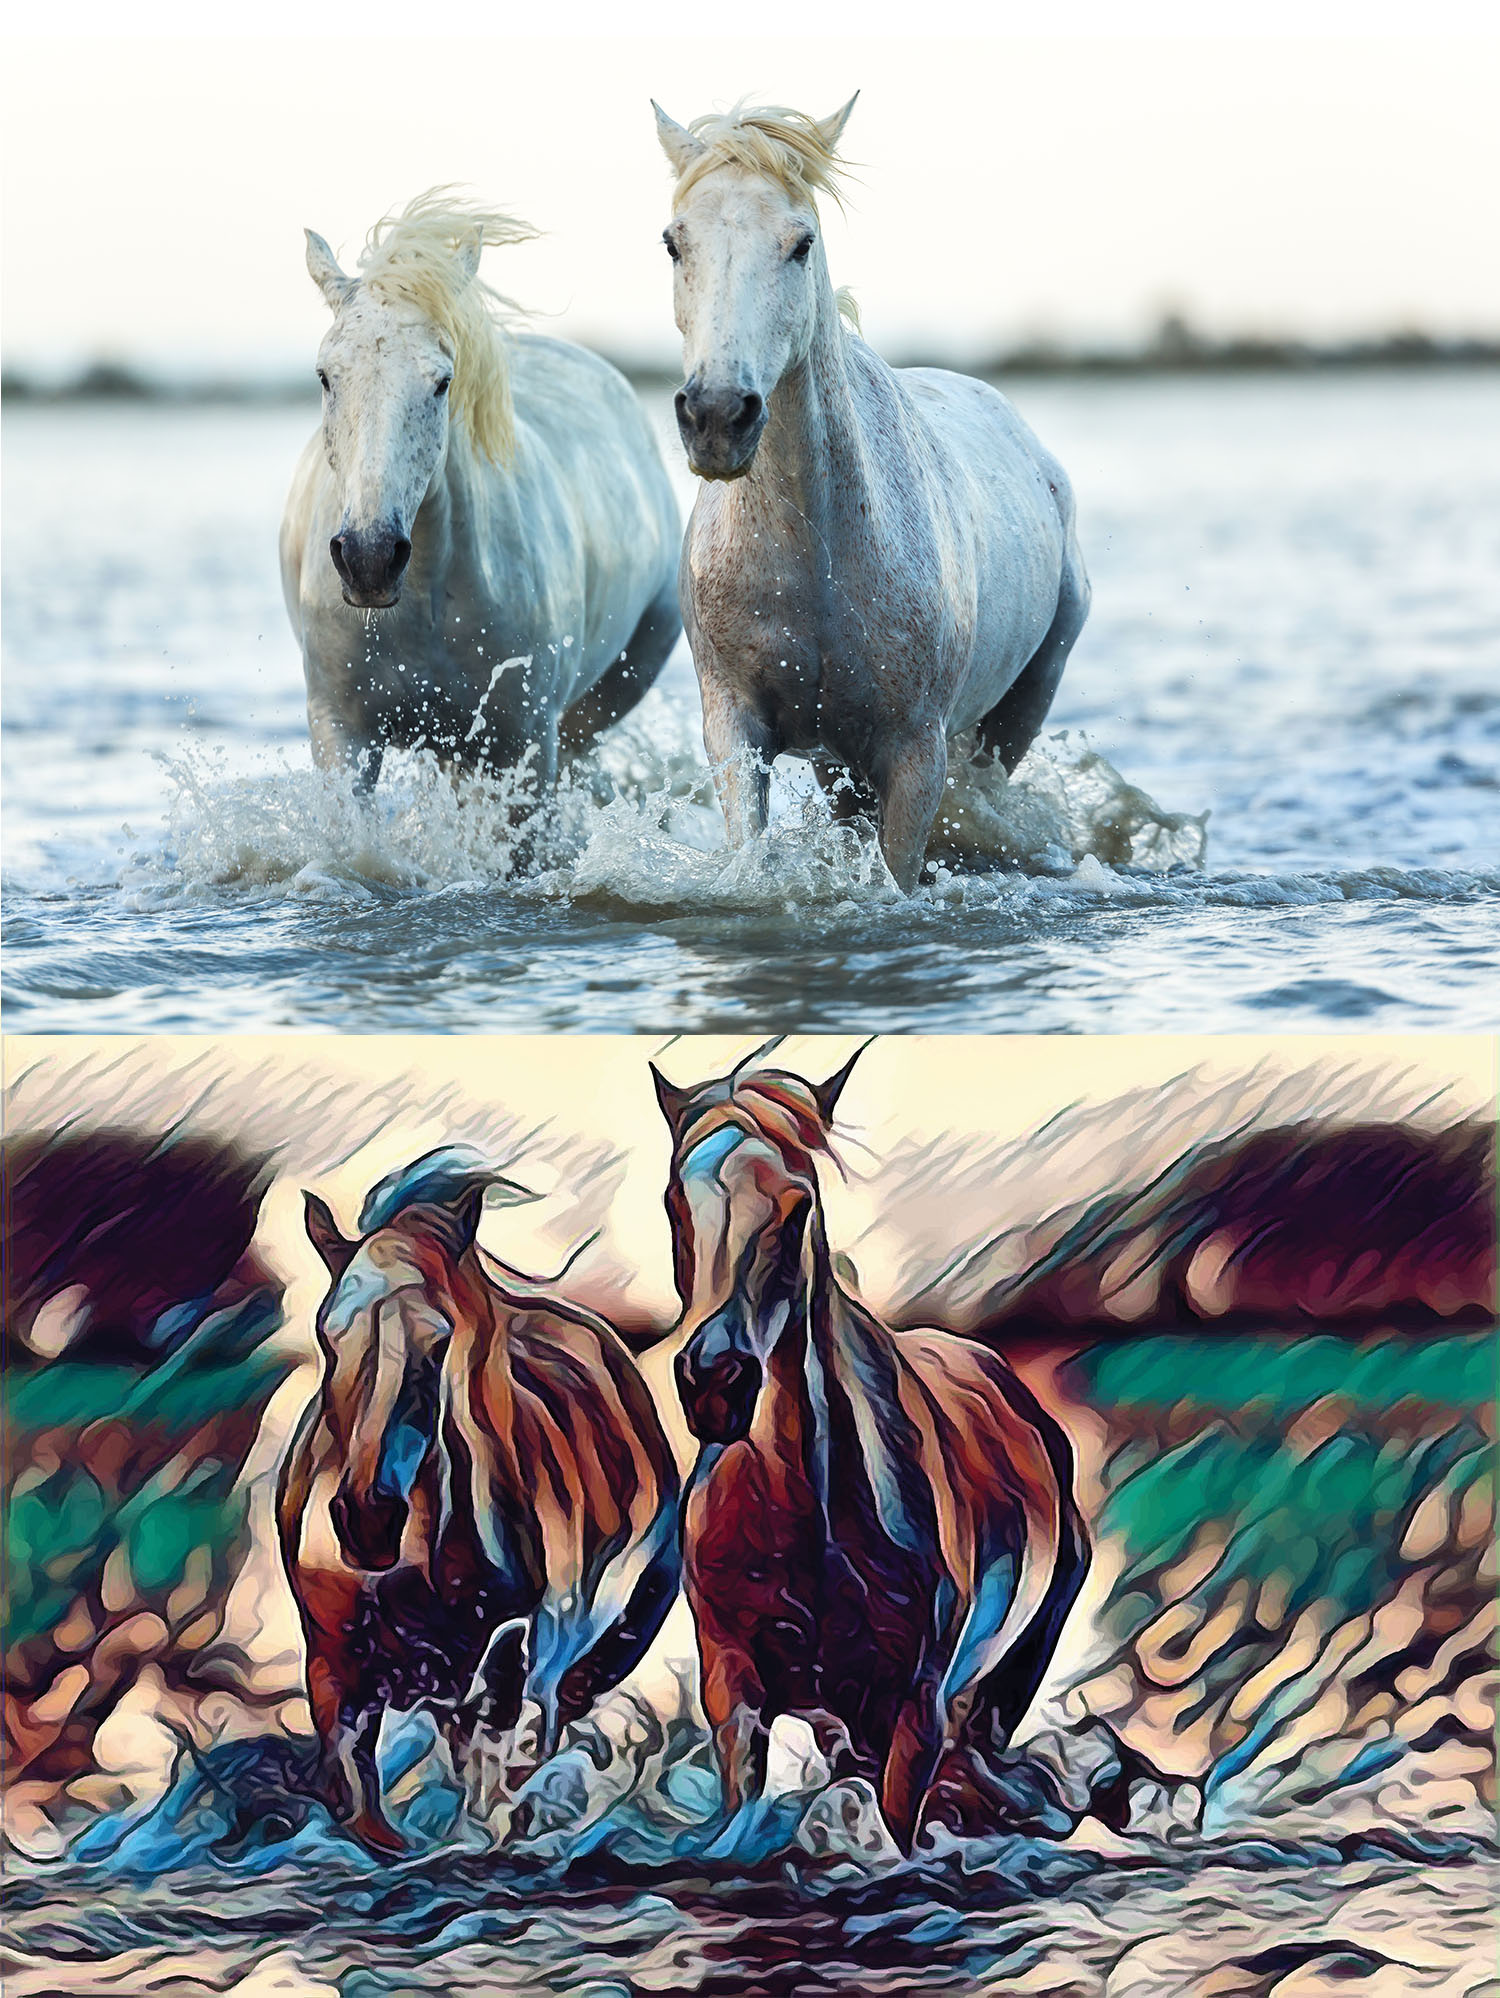 Before and after stylized image of two horses running through water